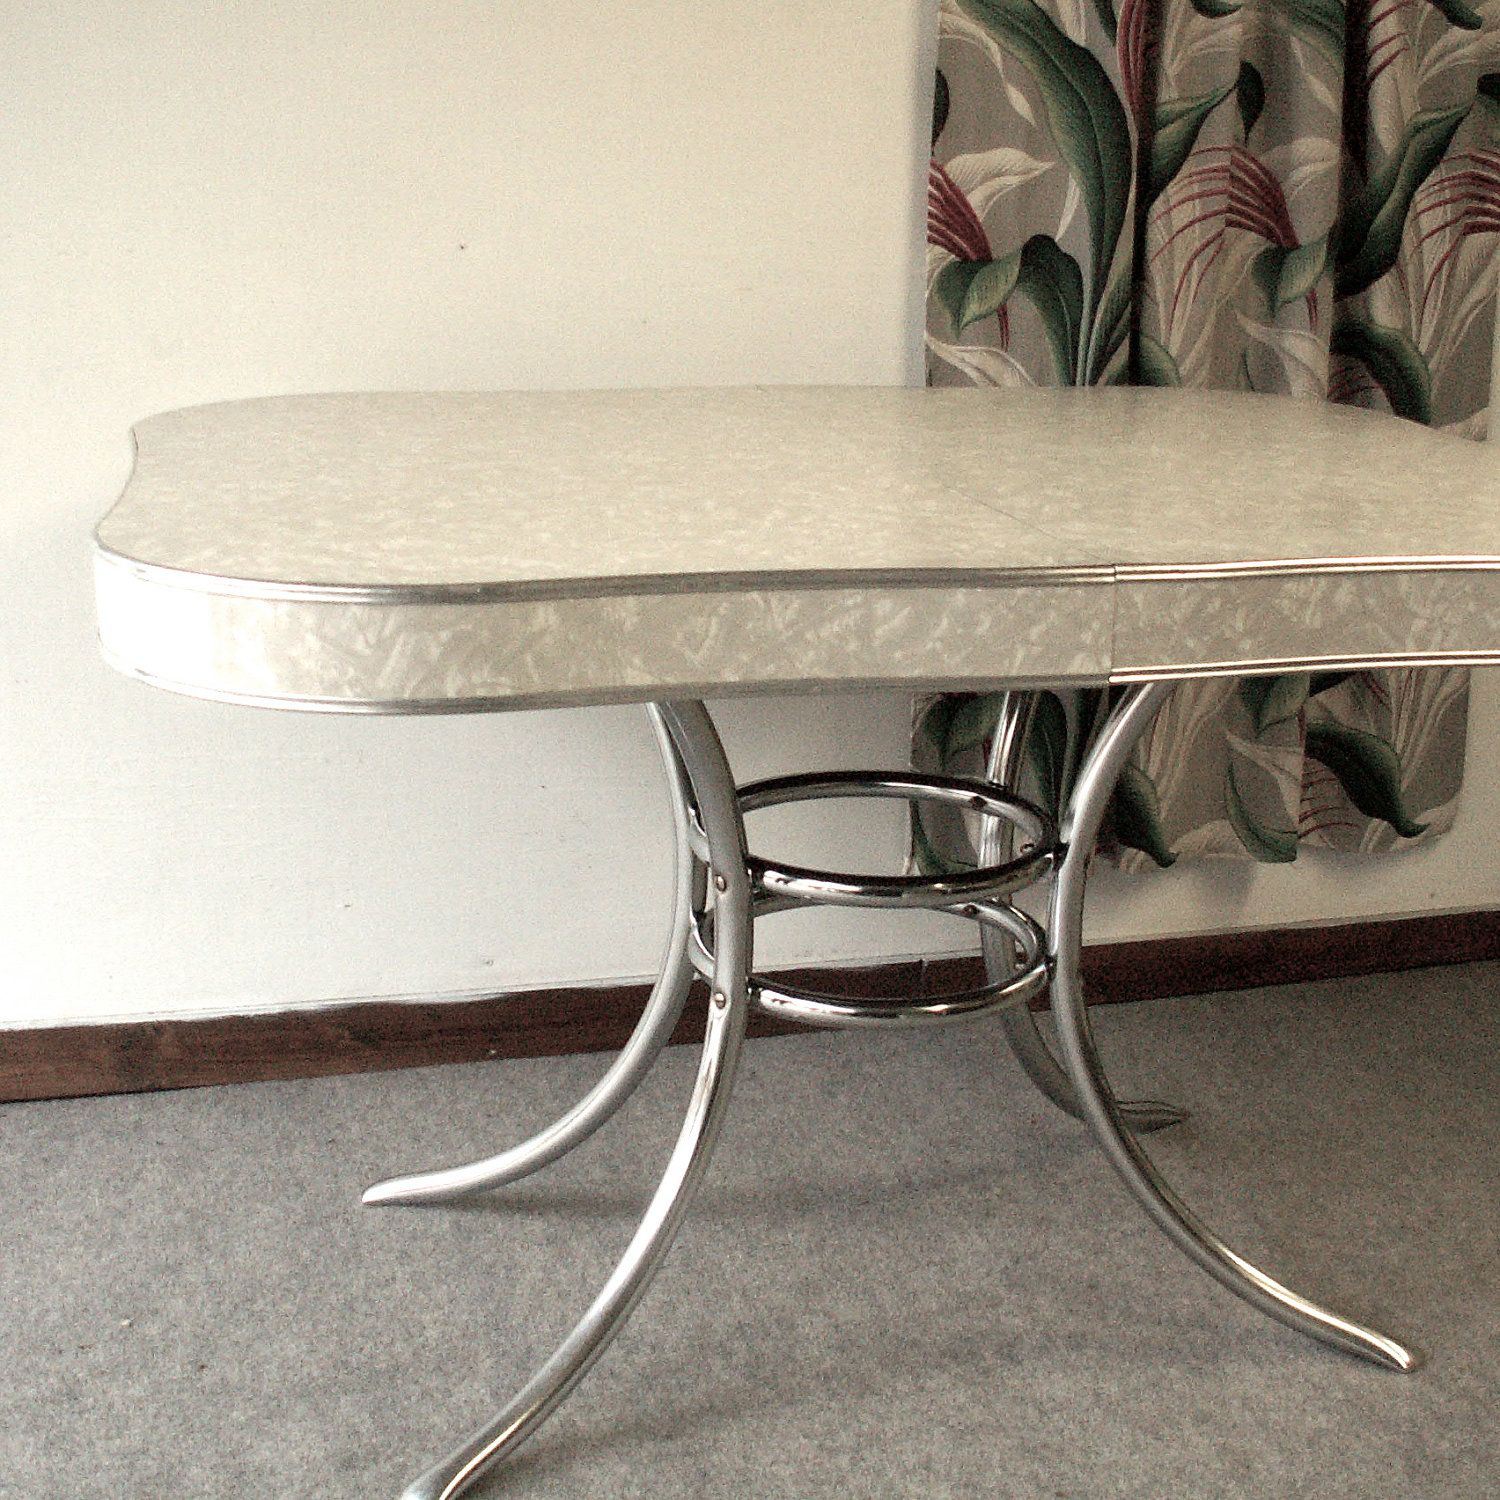 Vintage 1950's Formica And Chrome Kitchen Table